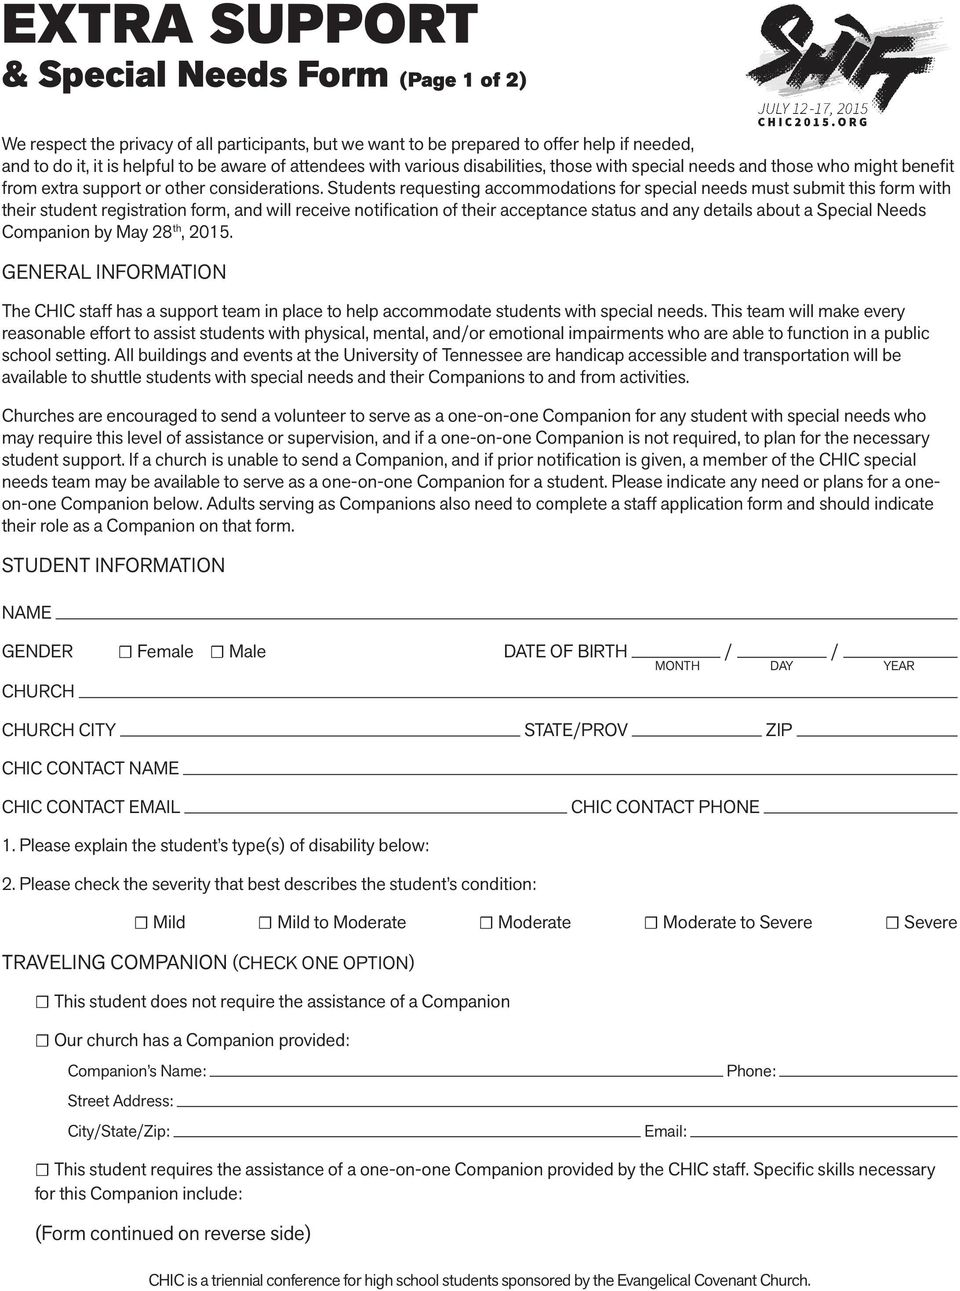 Students requesting accommodations for special needs must submit this form with their student registration form, and will receive notification of their acceptance status and any details about a